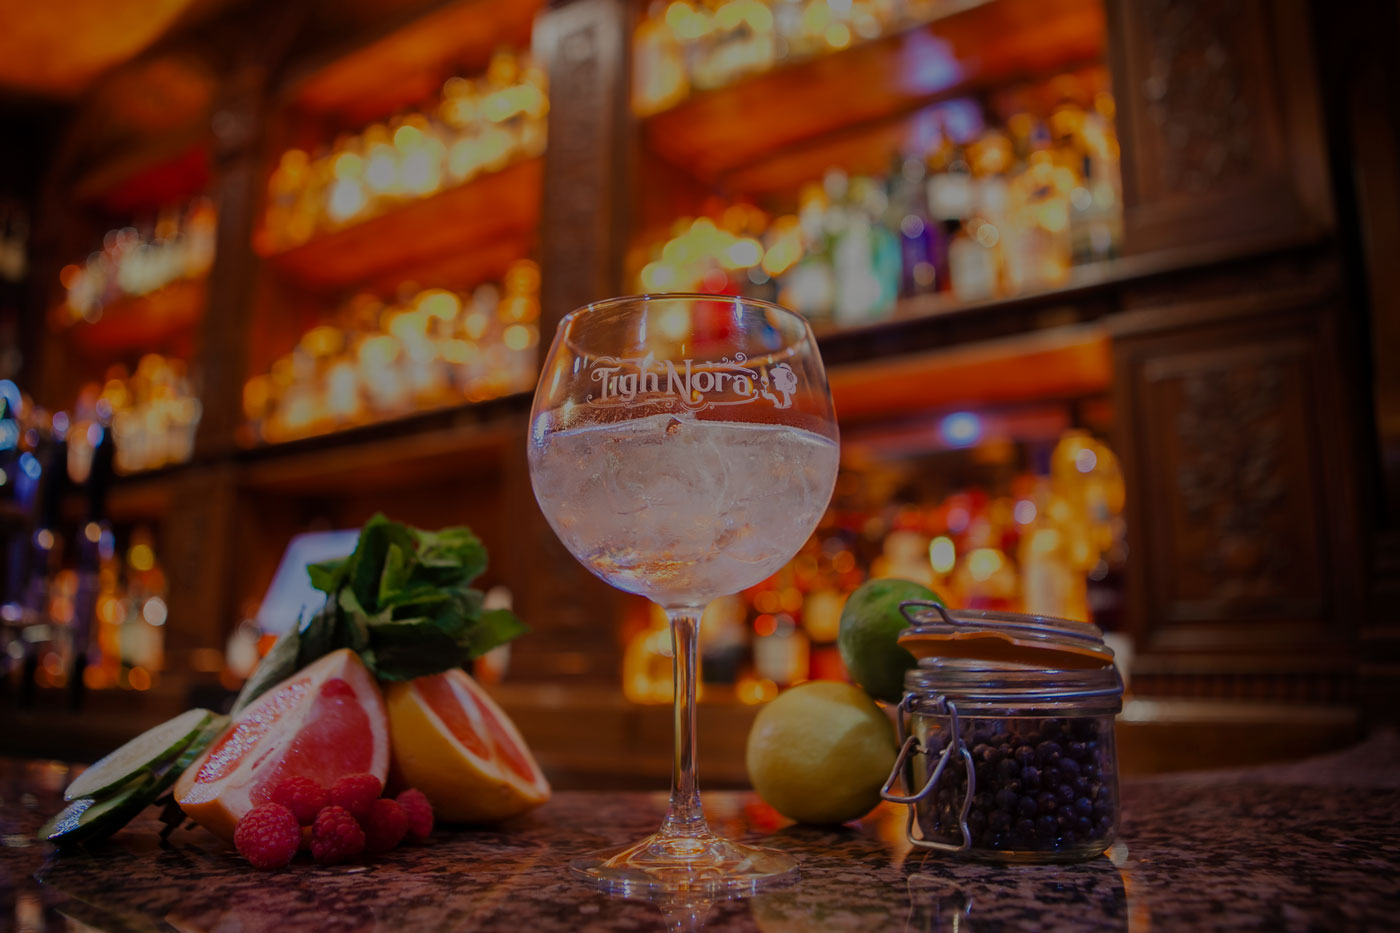 Welcome to Tigh Nora, Galway's New Gin Bar opening Friday 10th March 2017!